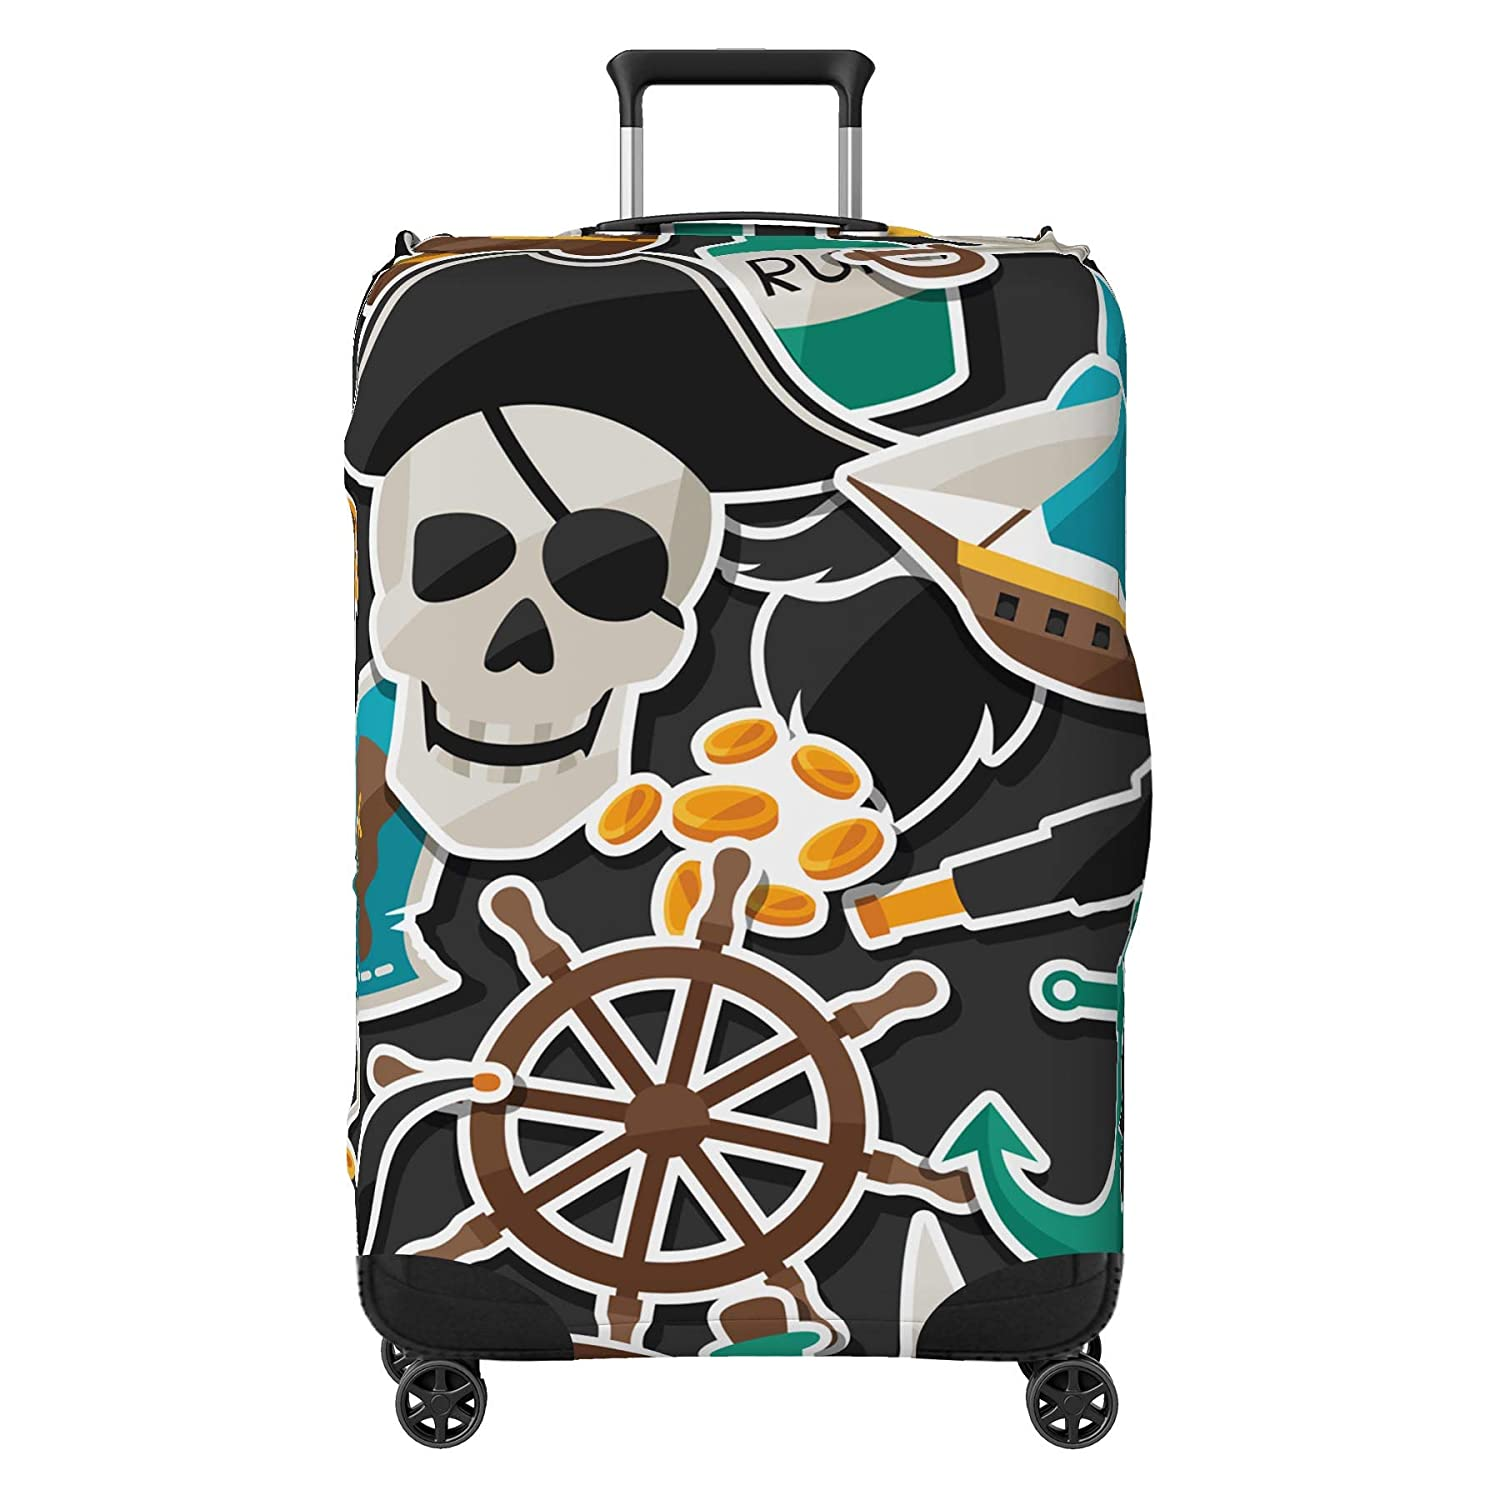 Pirate Skull Design Suitcase Cover Protector Skin Multi-Coloured Small 18-22 Suitcase Not Included